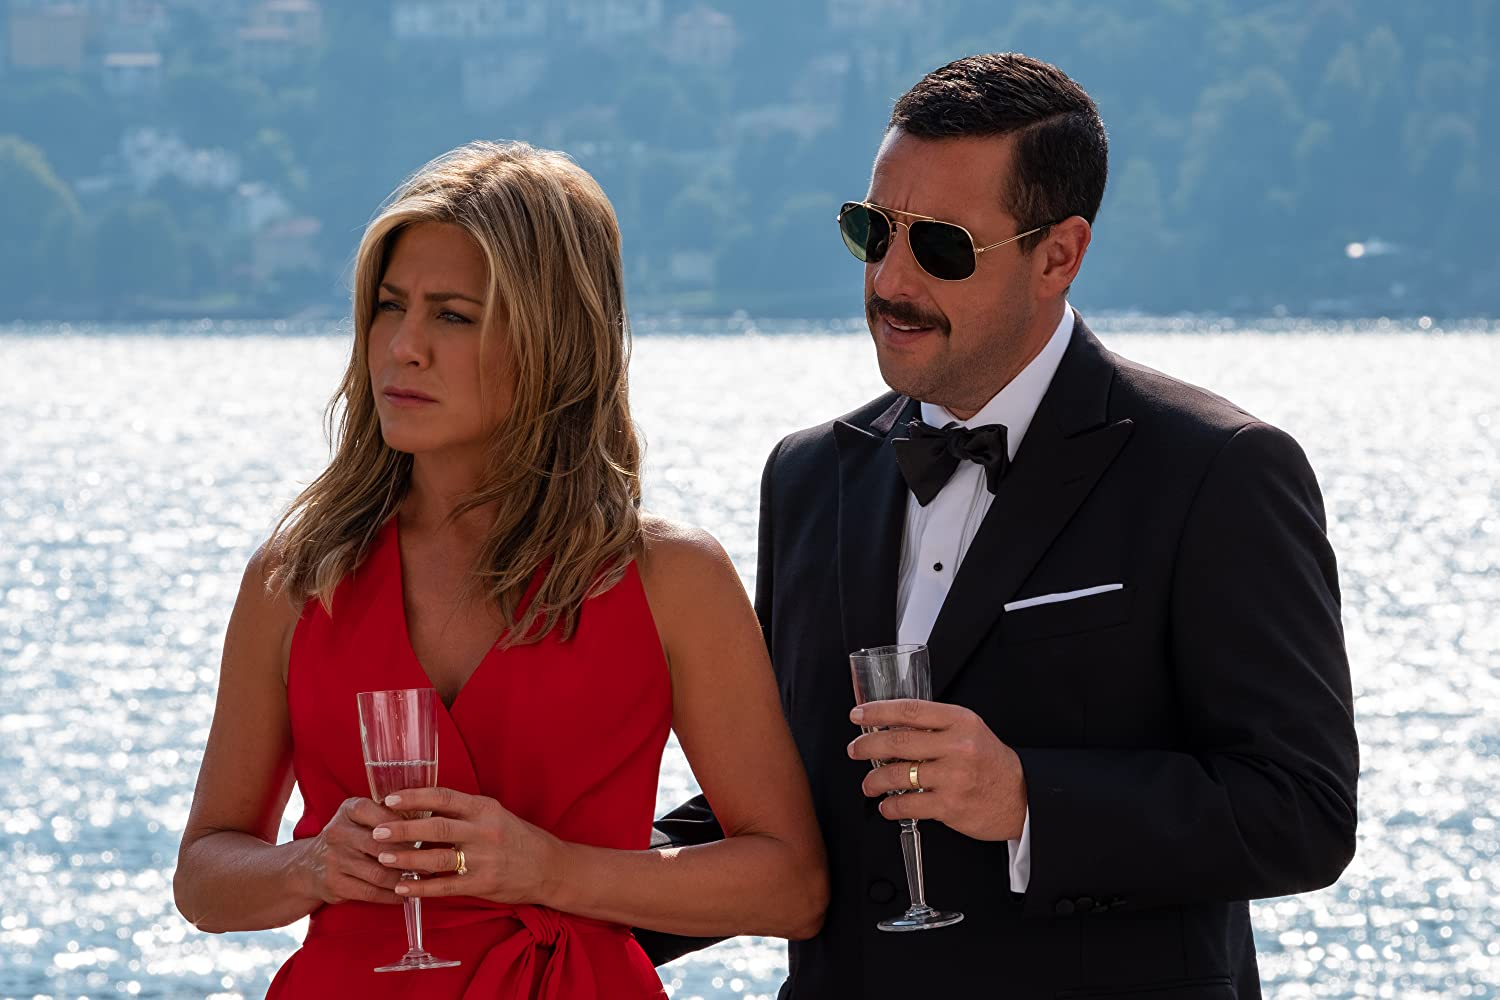 Jennifer Aniston and Adam Sandler in Murder Mystery (2019)